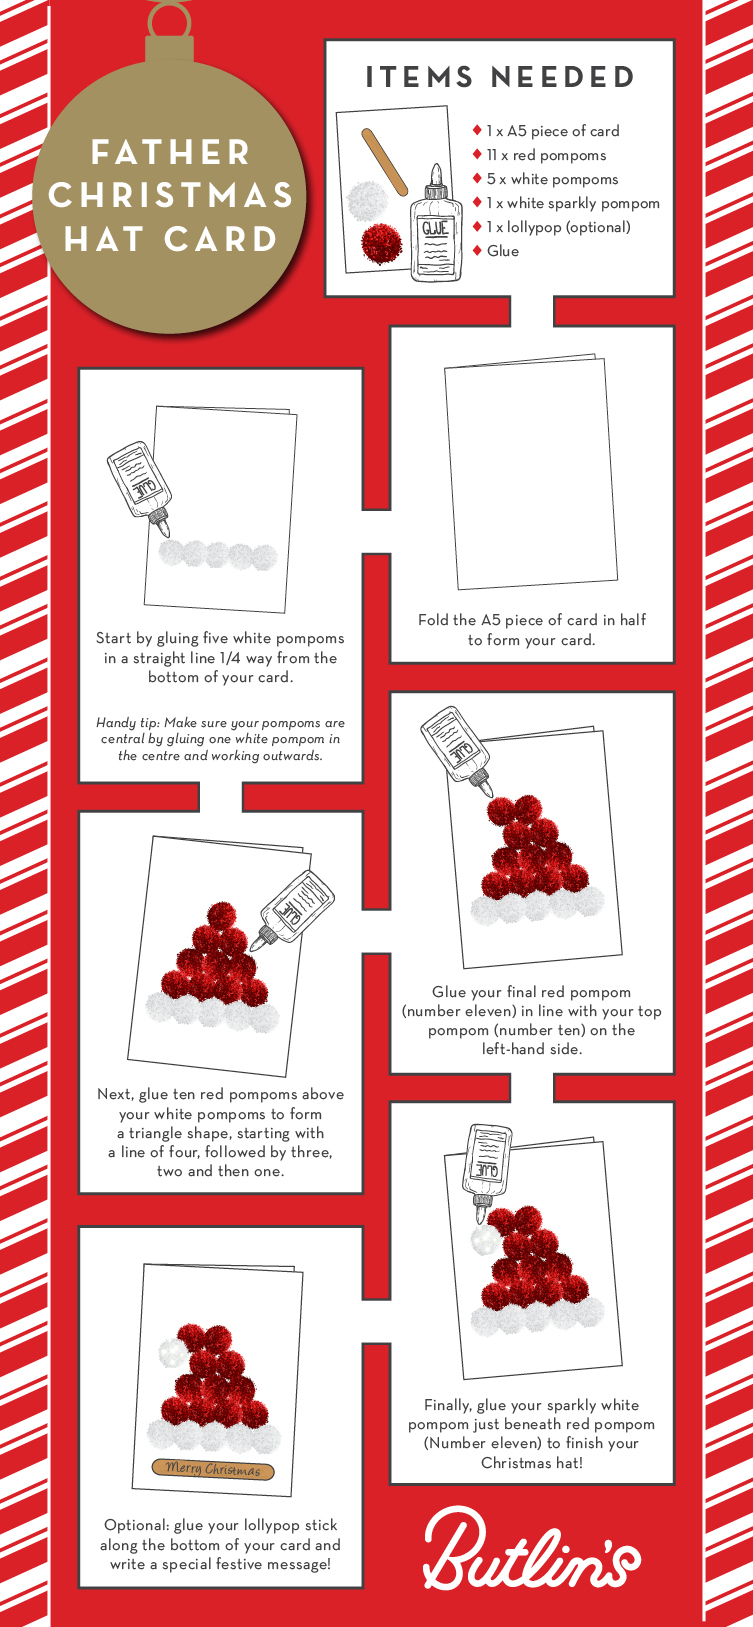 Father Christmas Hat card | Christmas how to | Butlins Blog